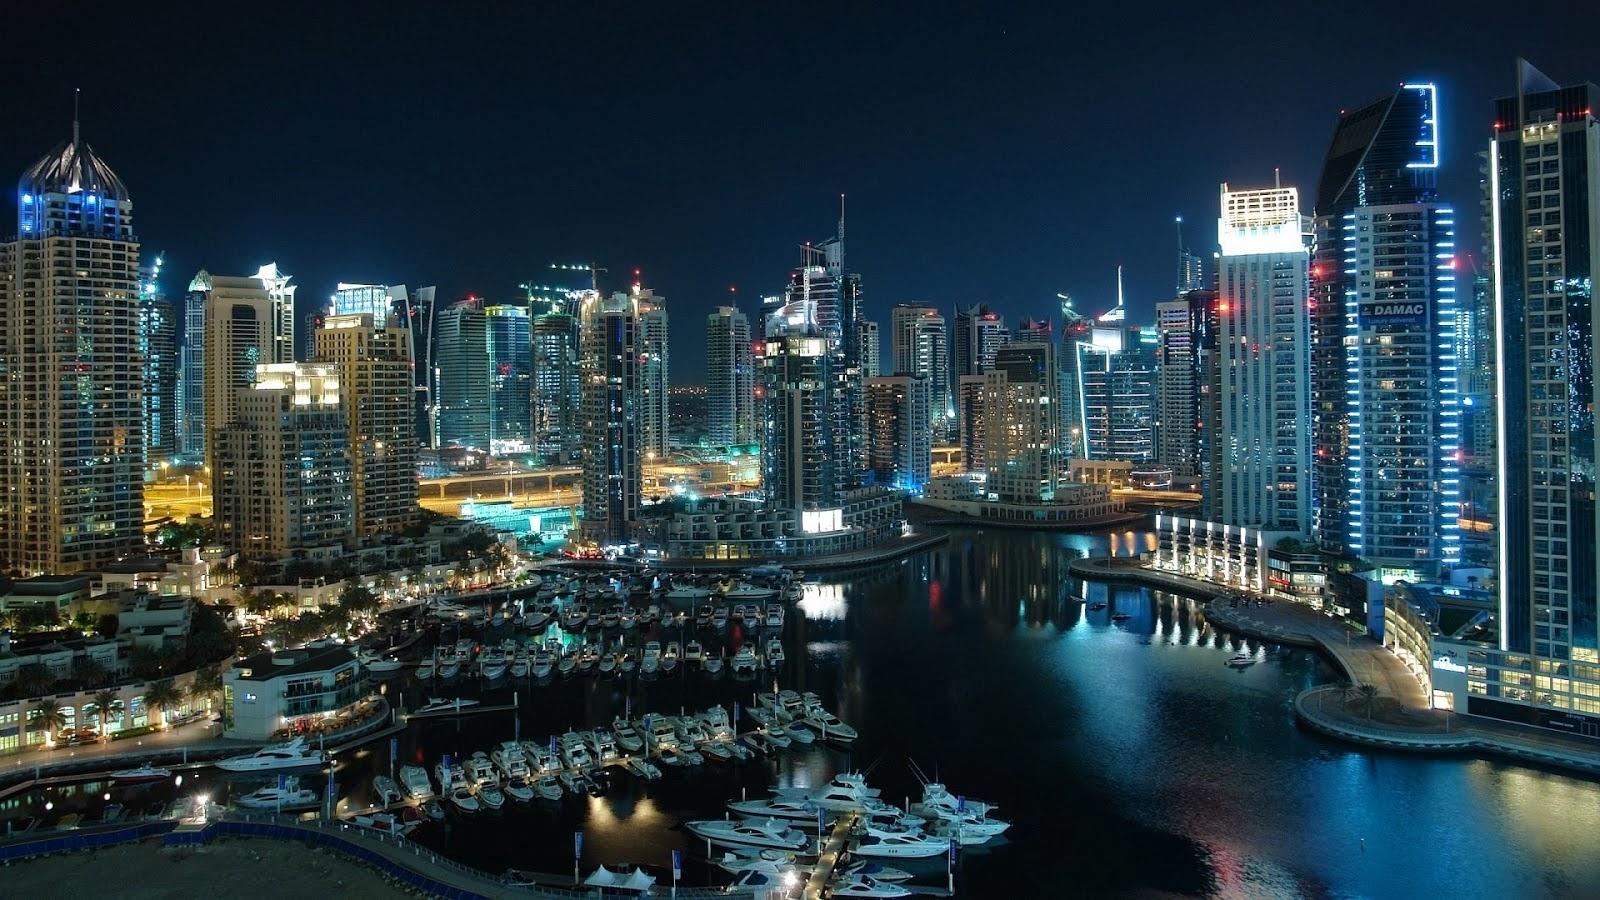 HD WALLPAPERS Download Dubai City HD Wallpapers 1080p 1600x900